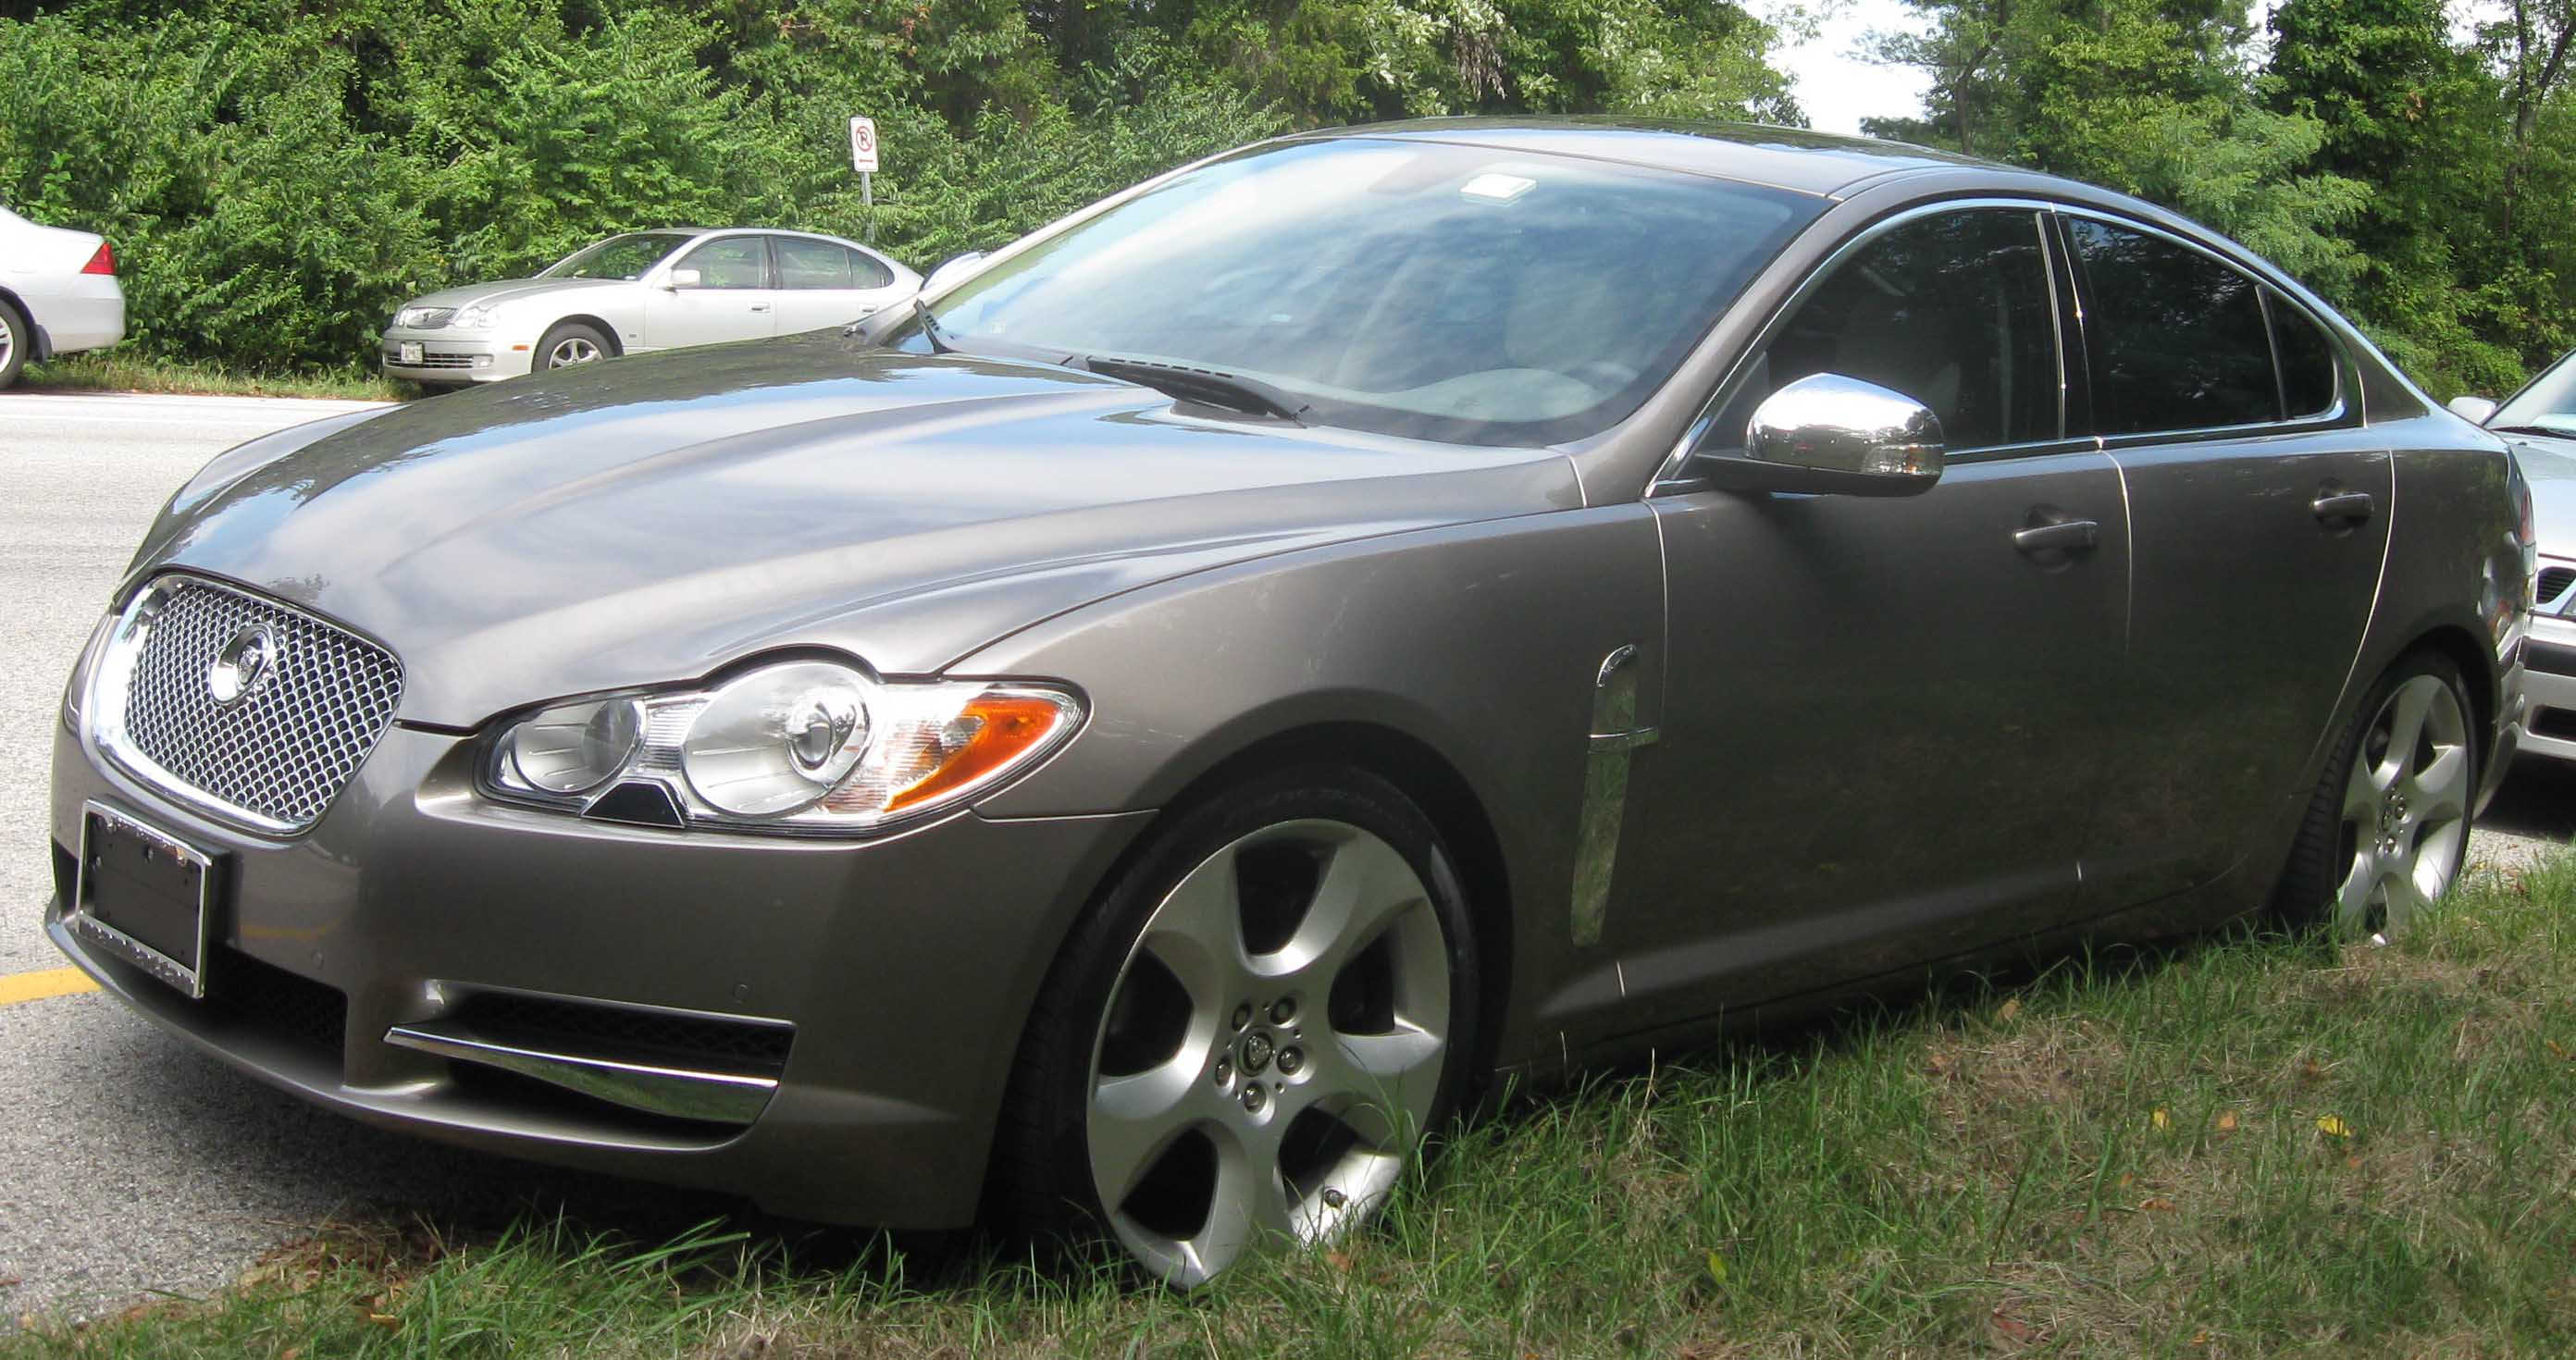 looking find description used a west for vehicle car are not dealer fill form herr carfinder about on with your htm you if getzville dealership website will we jaguar our xf of and choice new the out do